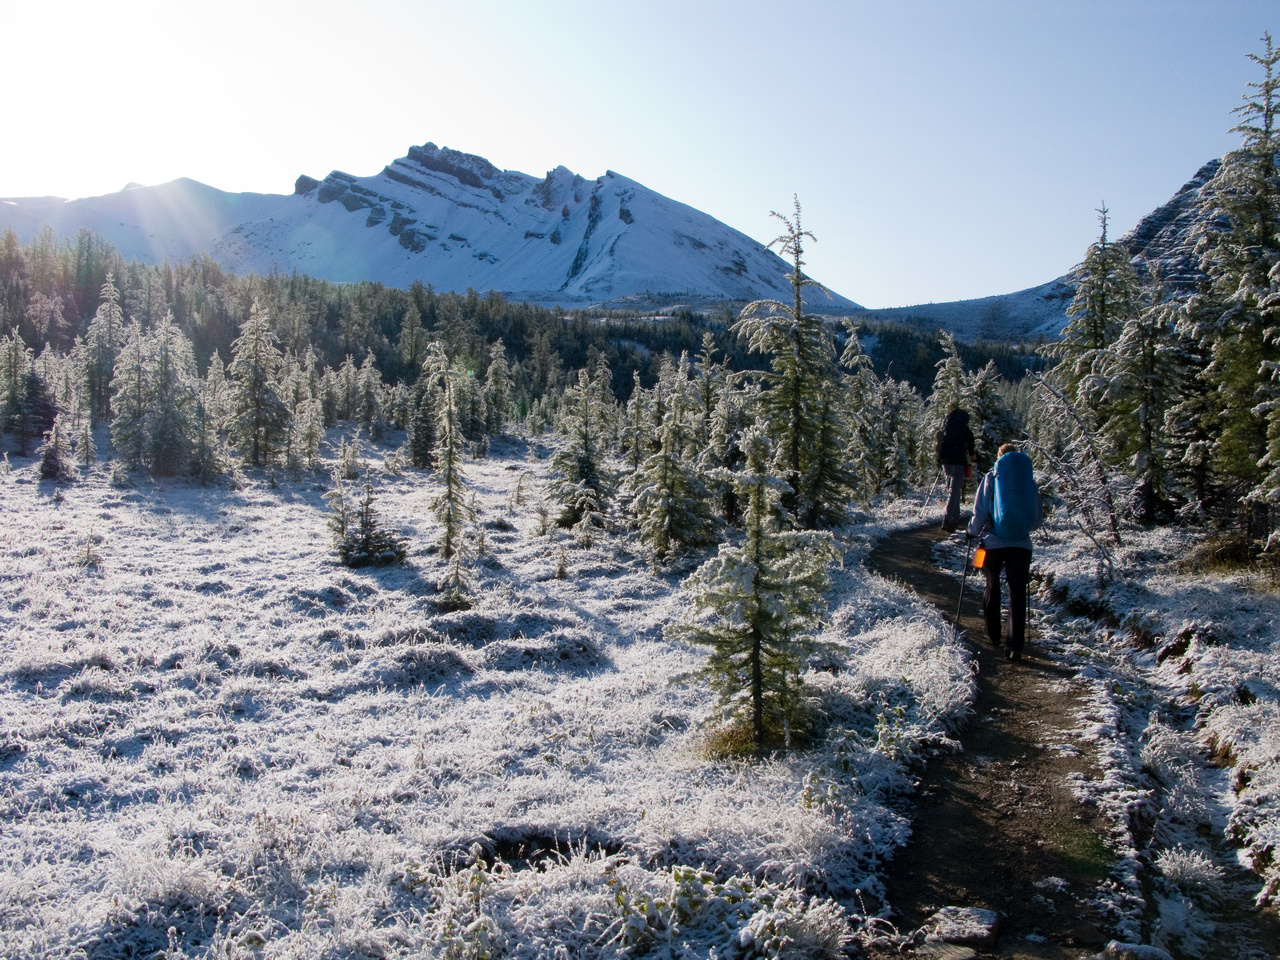 A frozen, white world on the trail up to Wonder Pass.